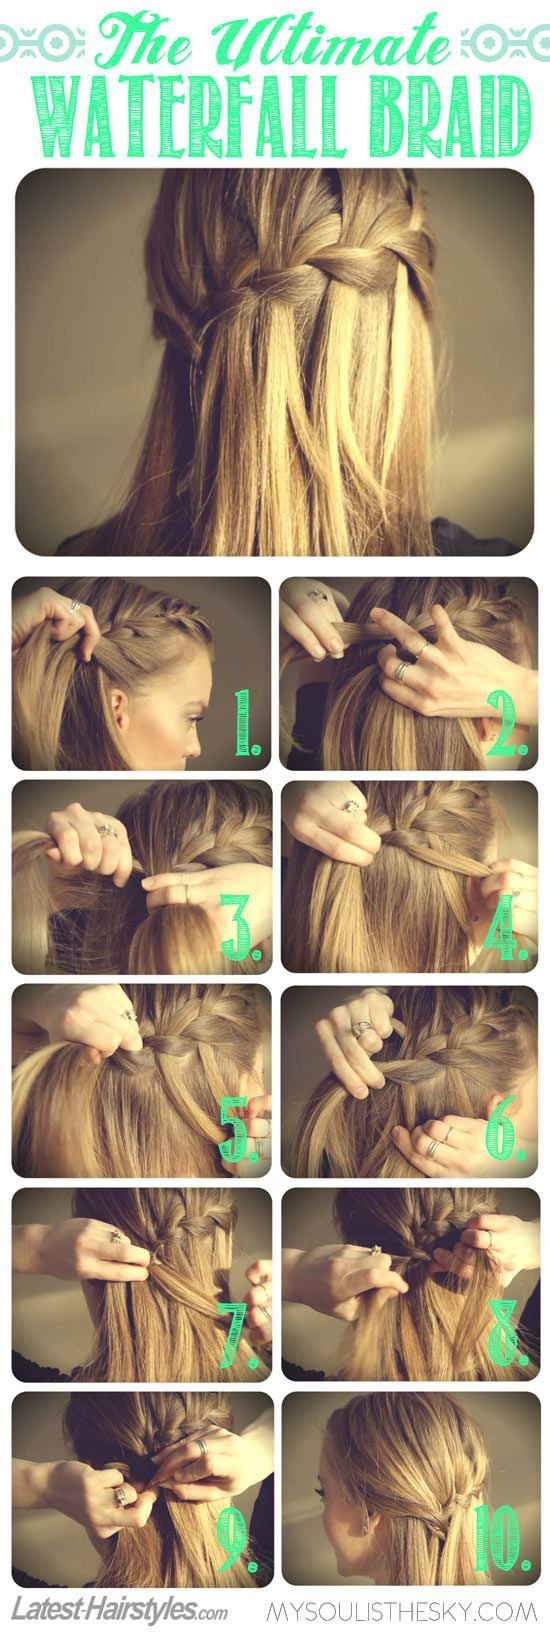 Best 25 waterfall braids ideas on pinterest waterfall hair how i am in love with the waterfall braid but i cant find a solutioingenieria Images